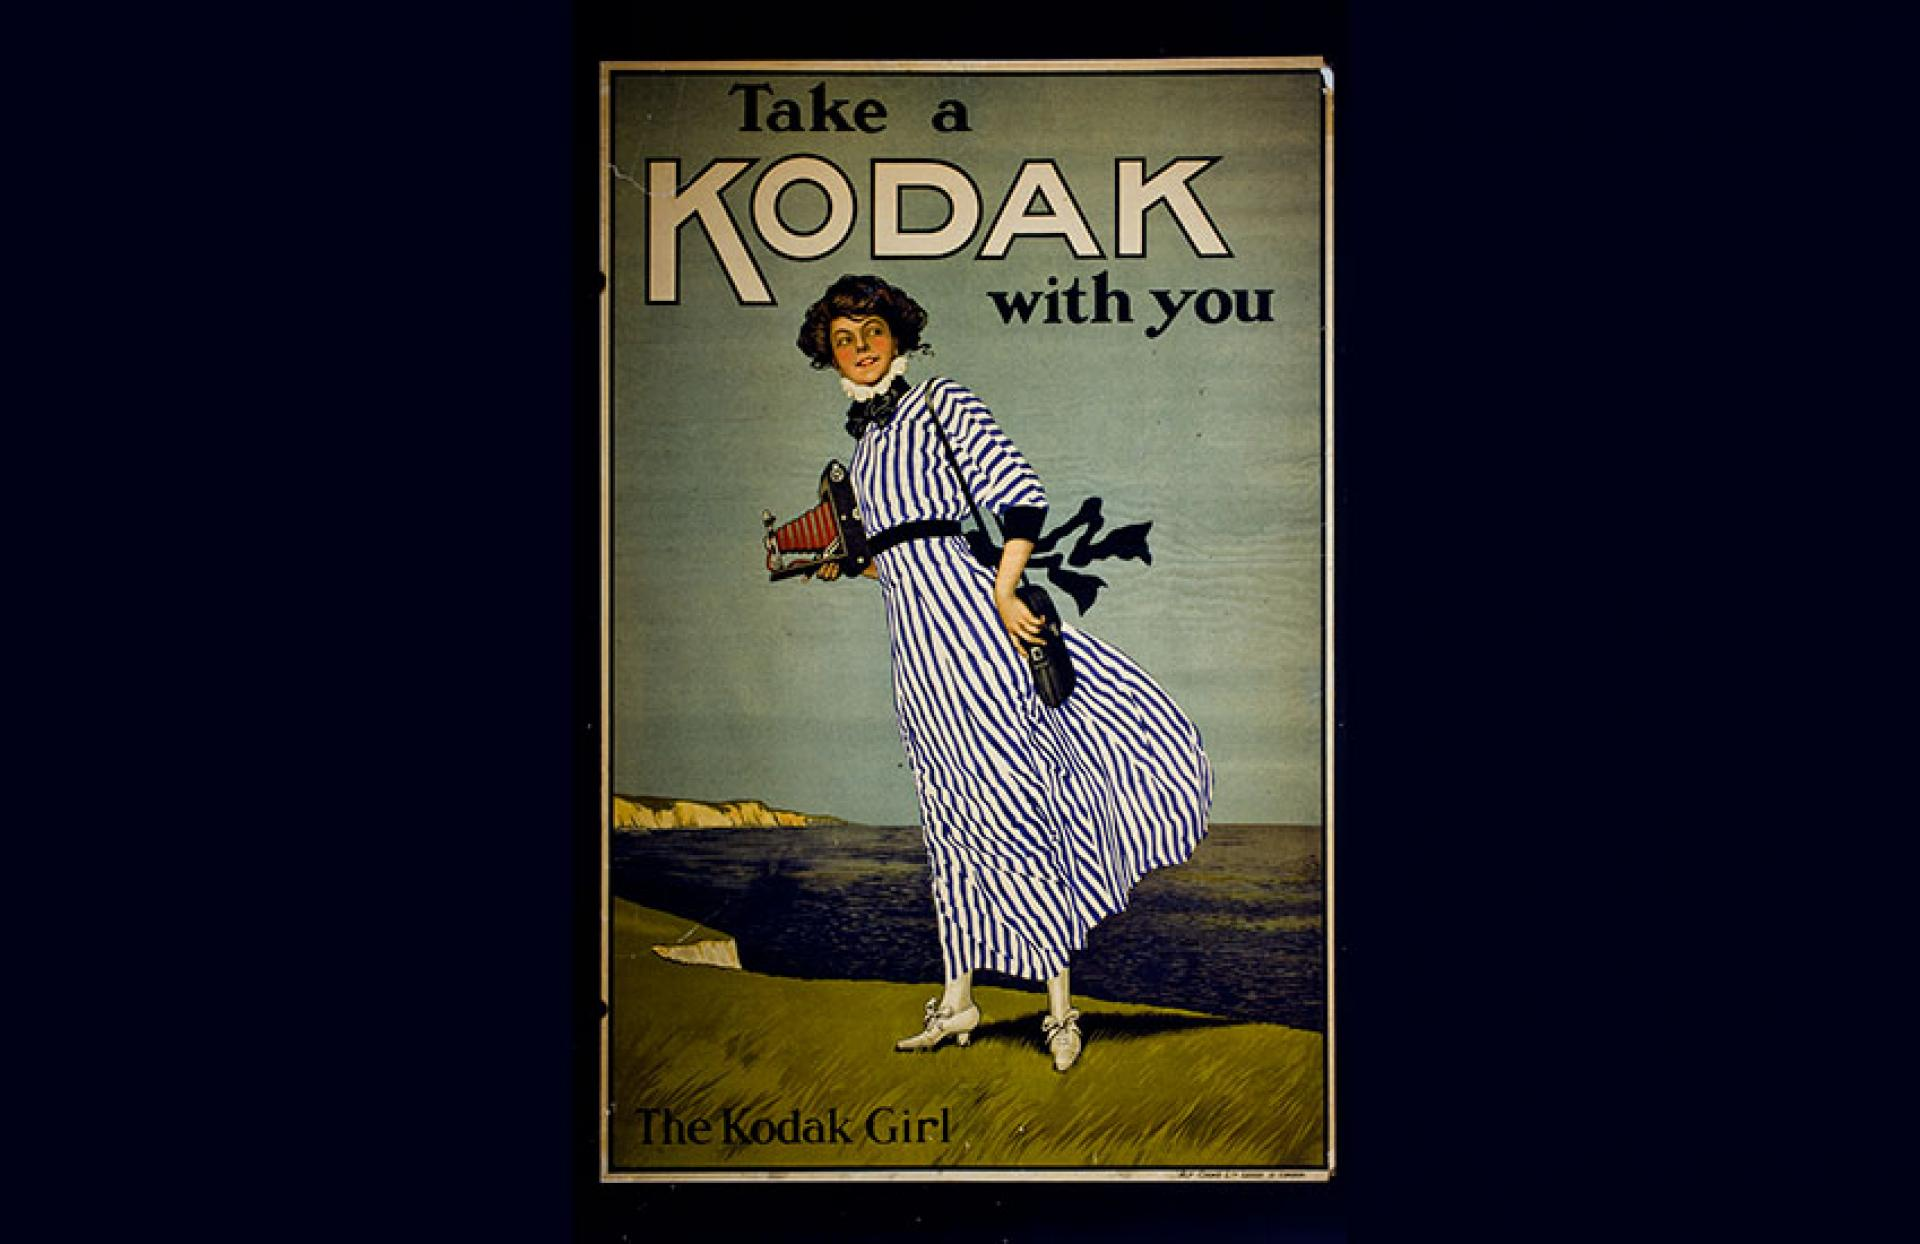 Kodak ad featuring the Kodak Girl